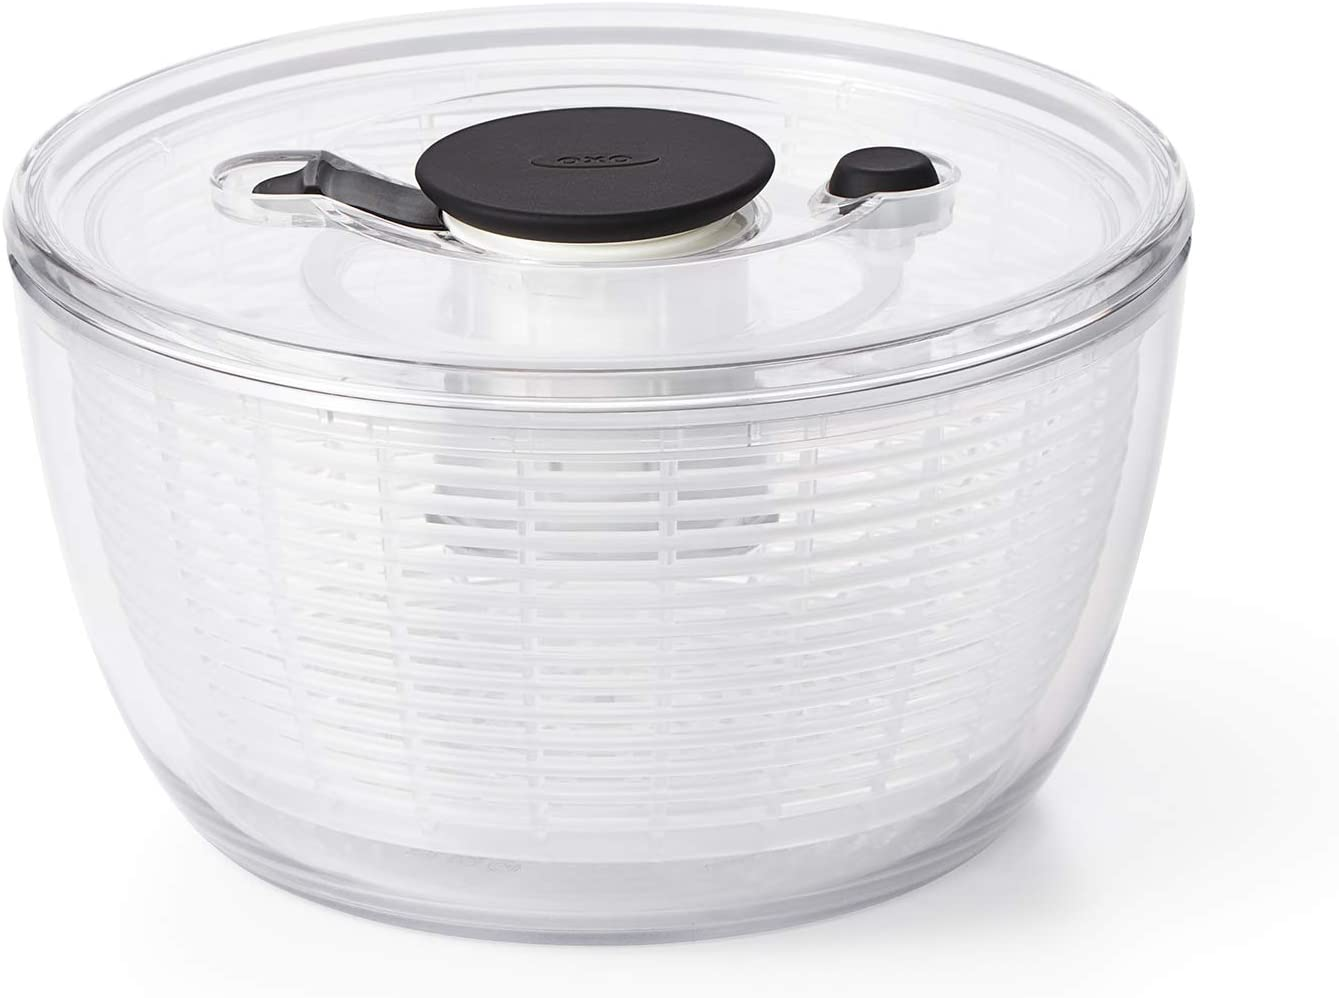 OXO Good Grips Little Salad Spinner National uniform free shipping Ranking TOP5 Herb